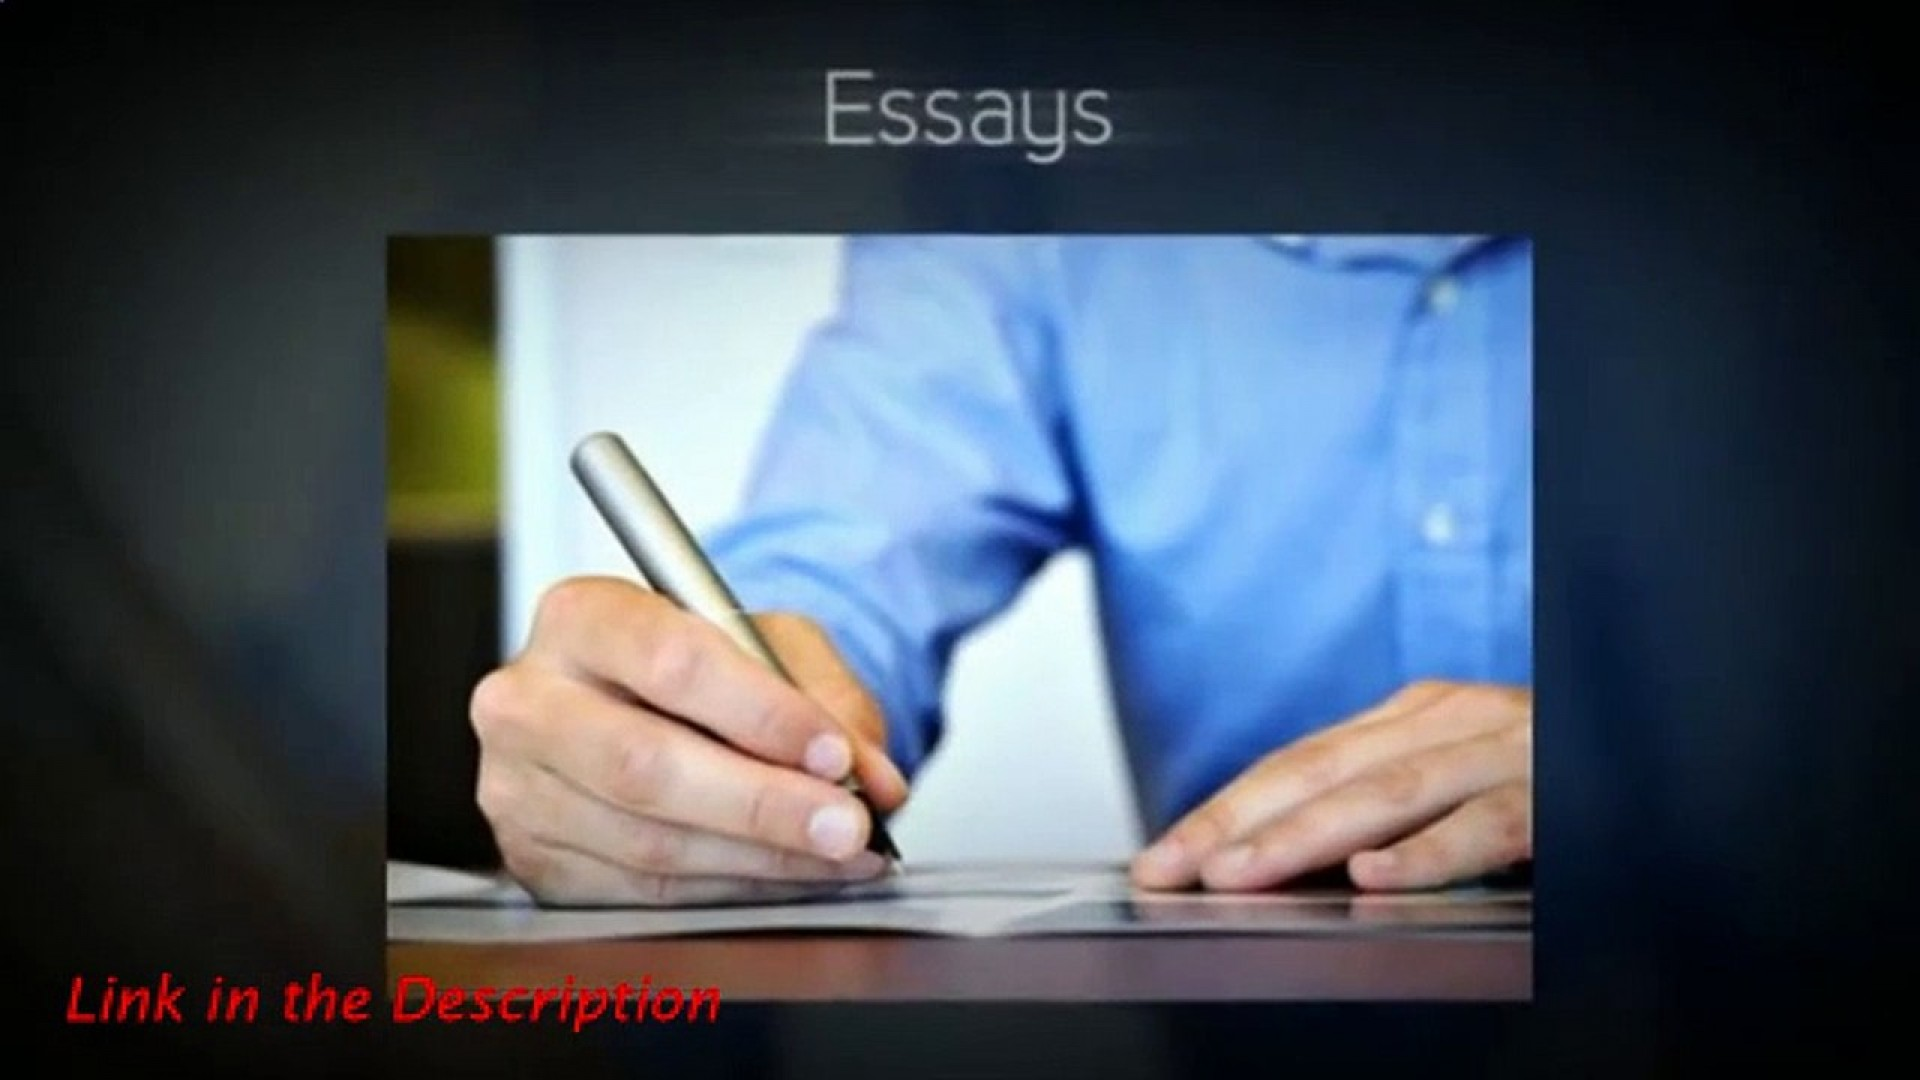 019 1280x720 Sdv How To Make Essay Look Longer Exceptional Essays Period Trick Your On Google Docs 1920